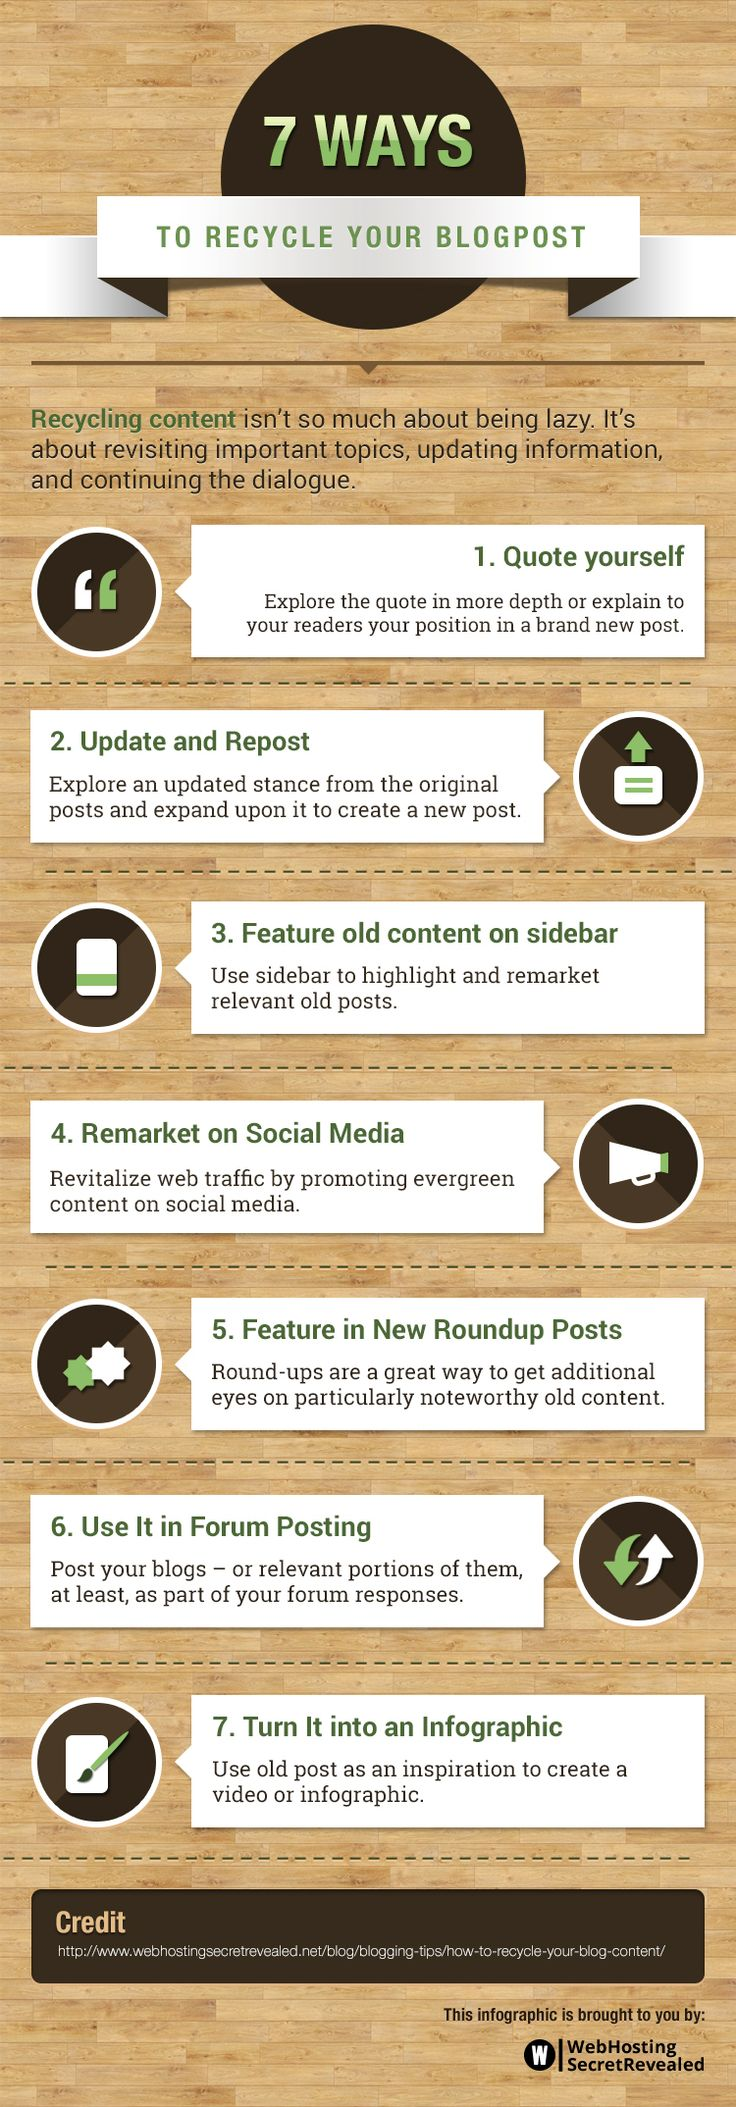 7 Easy Ways to Recycle Your Blog Posts